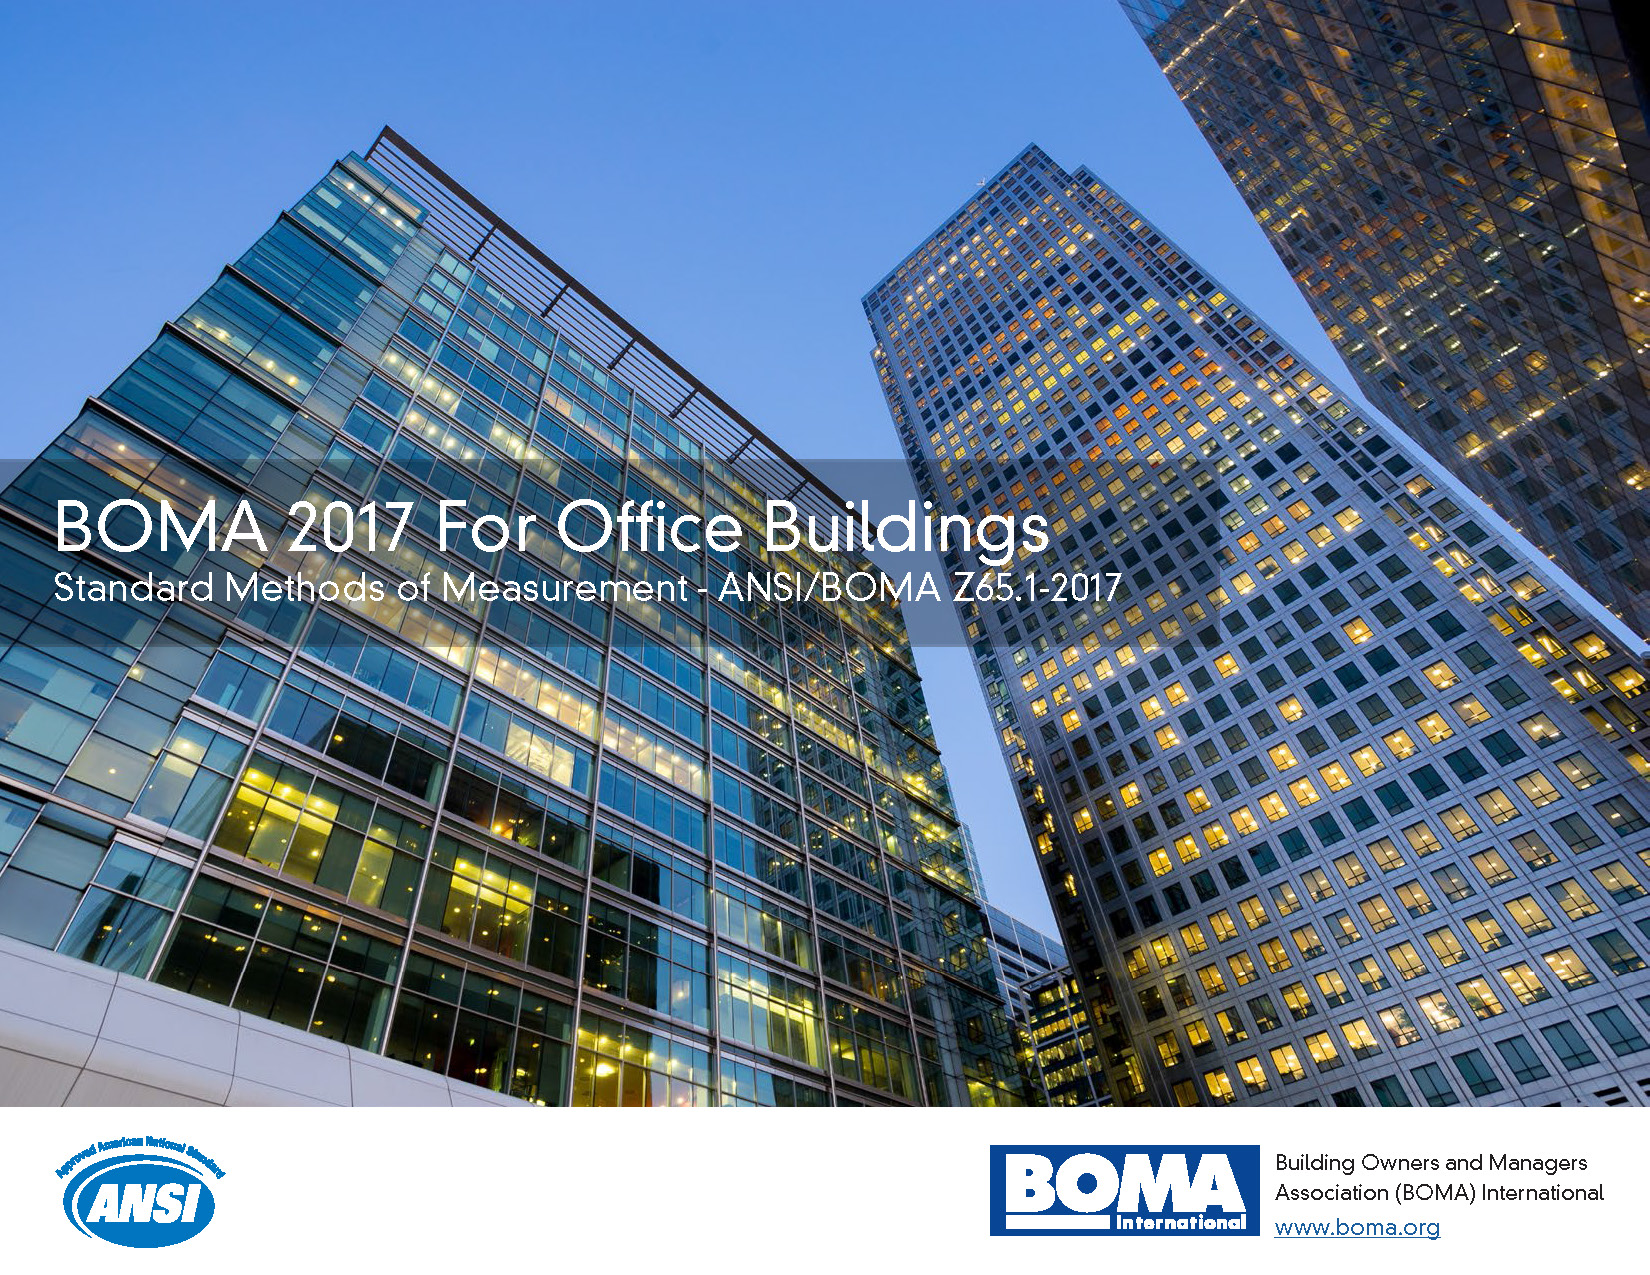 boma international releases new office measurement standard